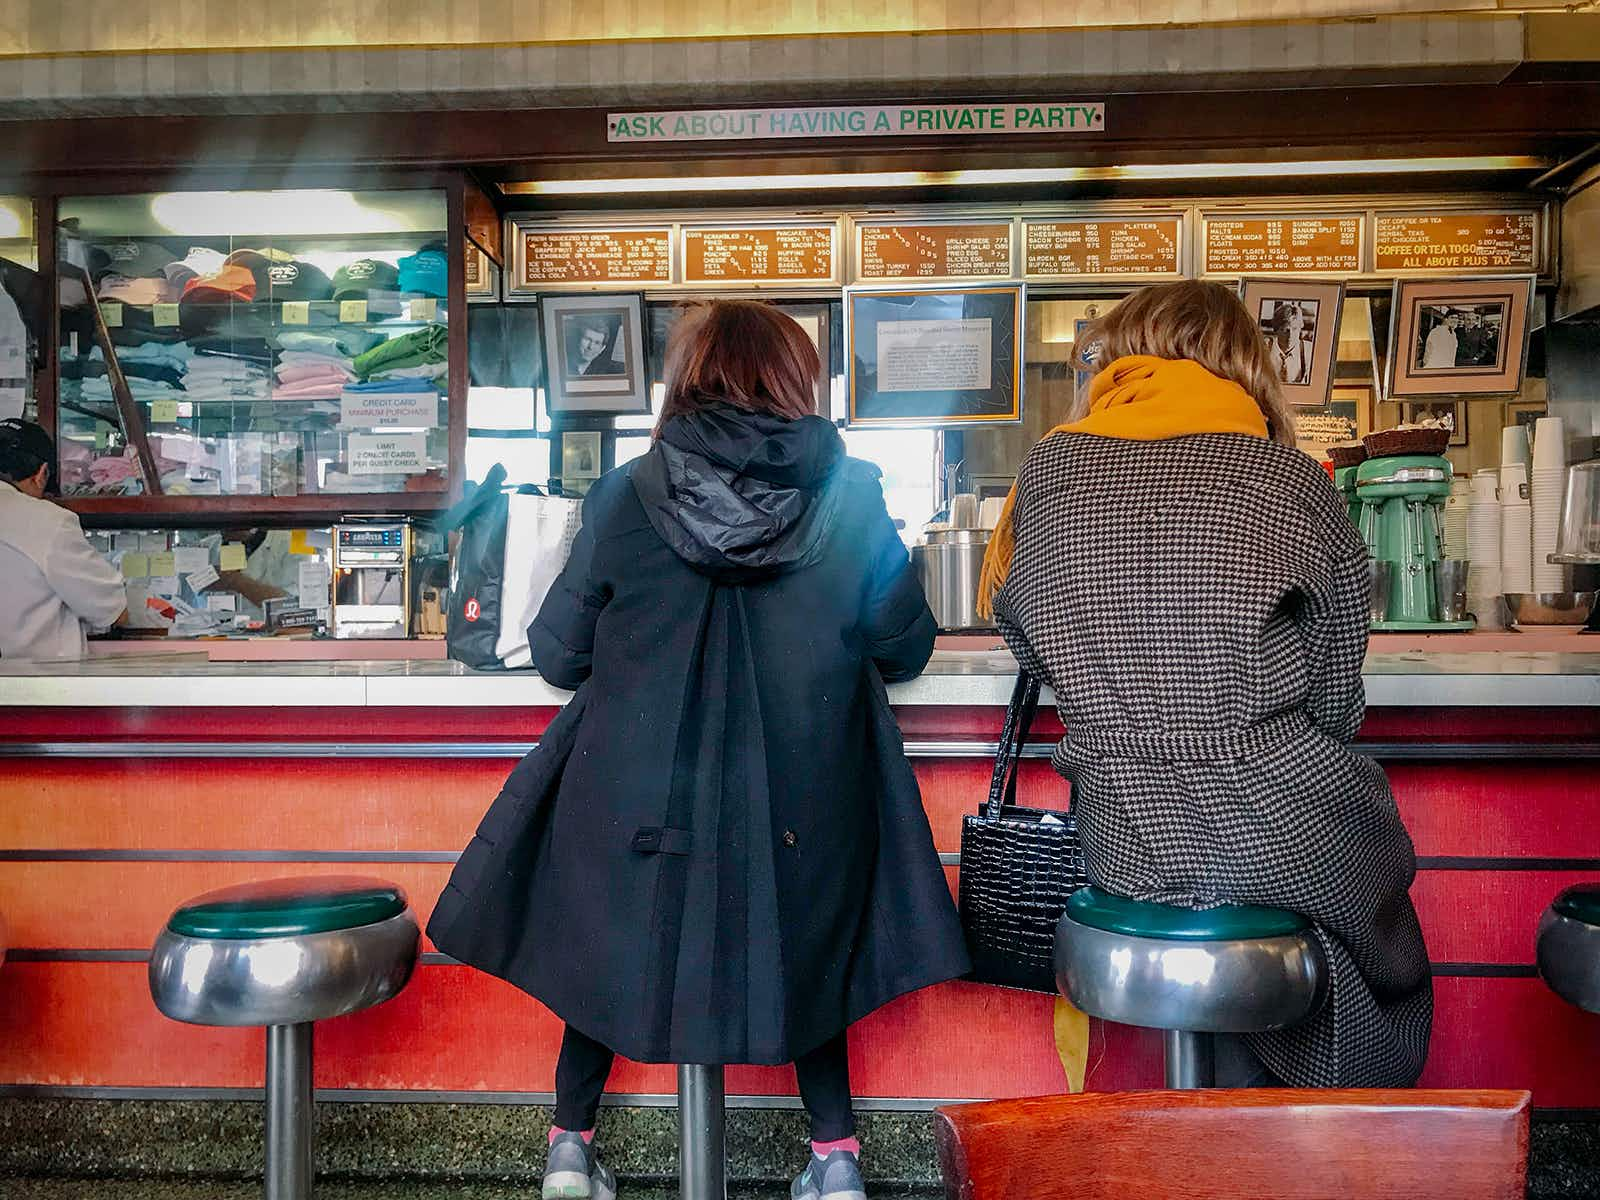 Settle in at one of New York City's historic diners © Mikki Brammer / Lonely Planet